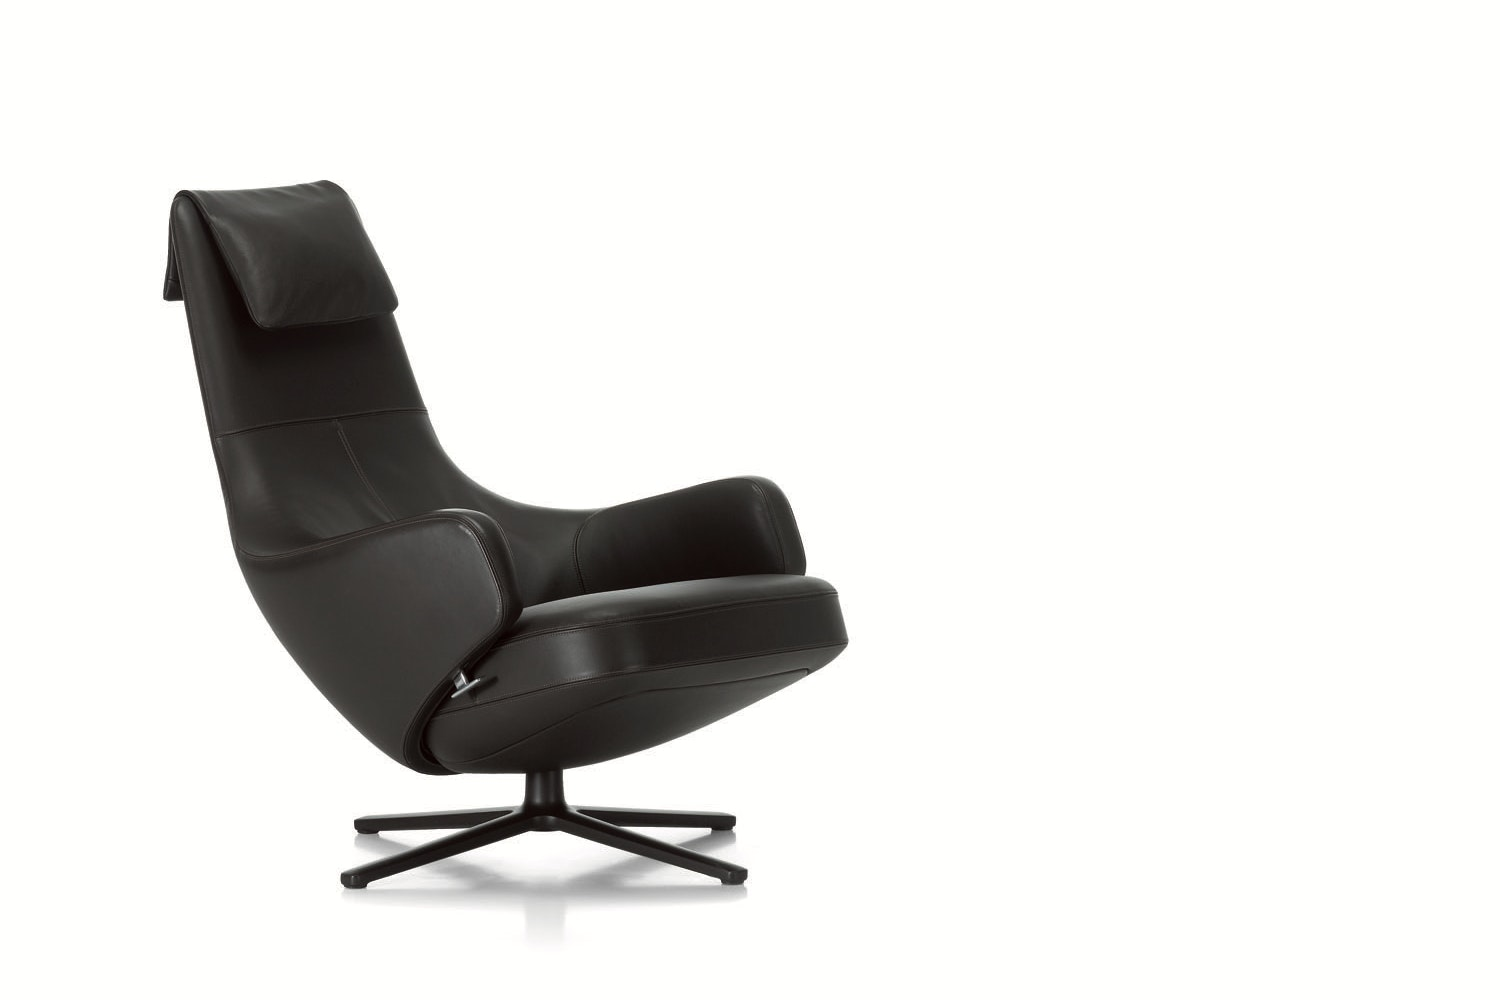 Repos Leather Armchair by Antonio Citterio for Vitra